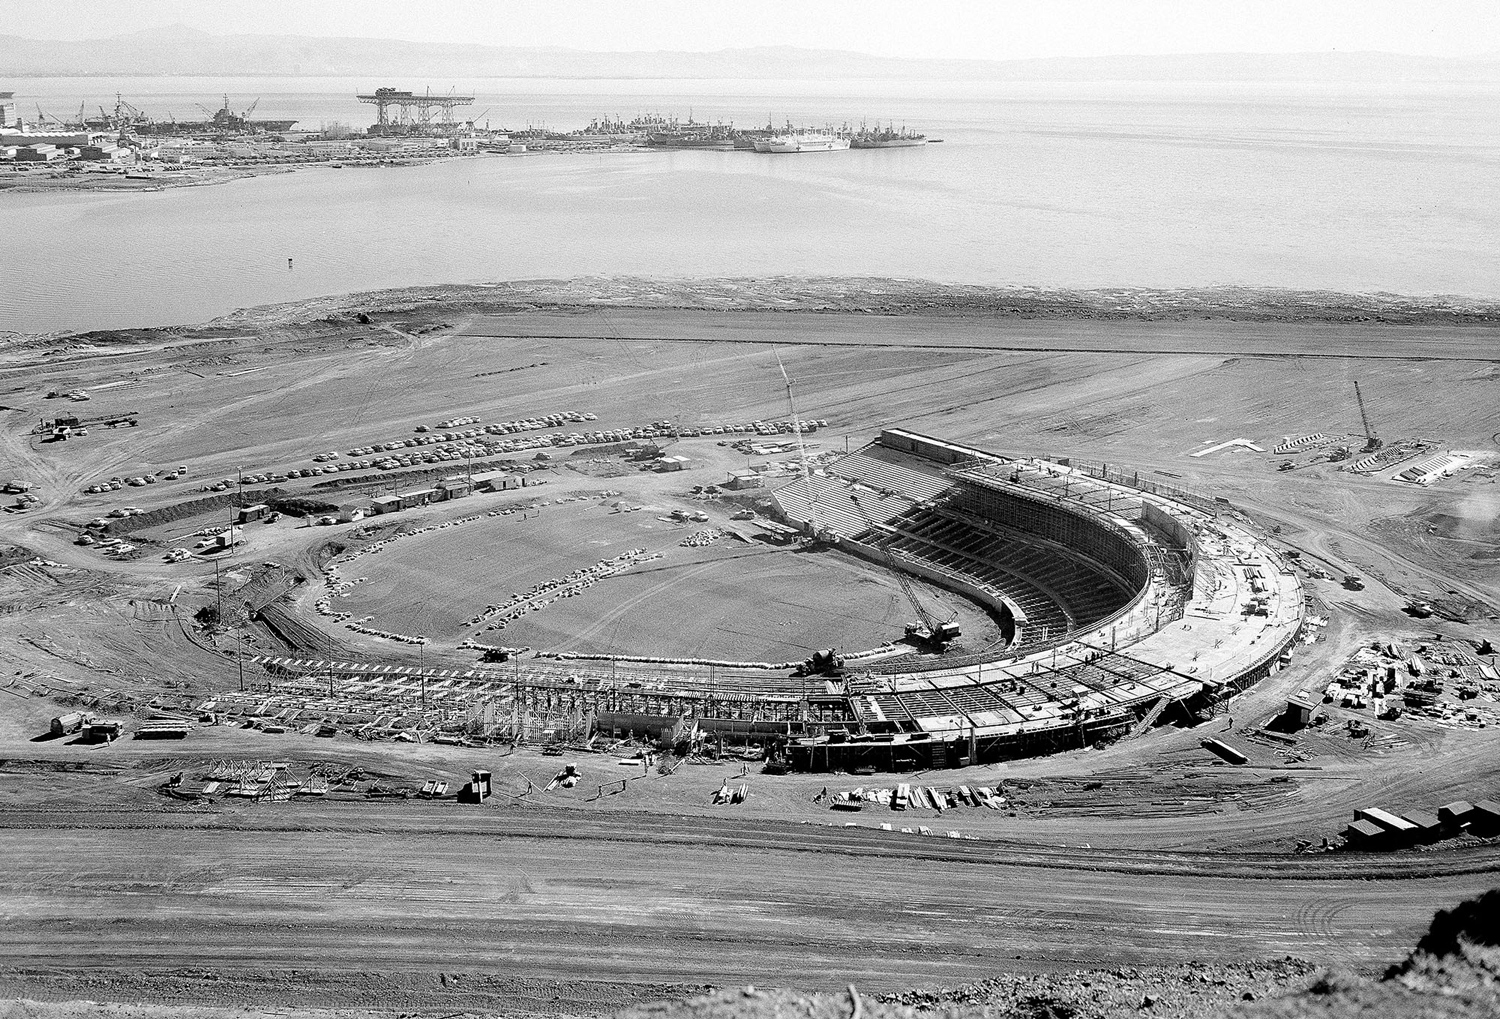 The 45,000-seat stadium being built for the San Francisco Giants, photographed on March 4, 1959. In the background is the U.S. Naval Shipyard at Hunter's Point.